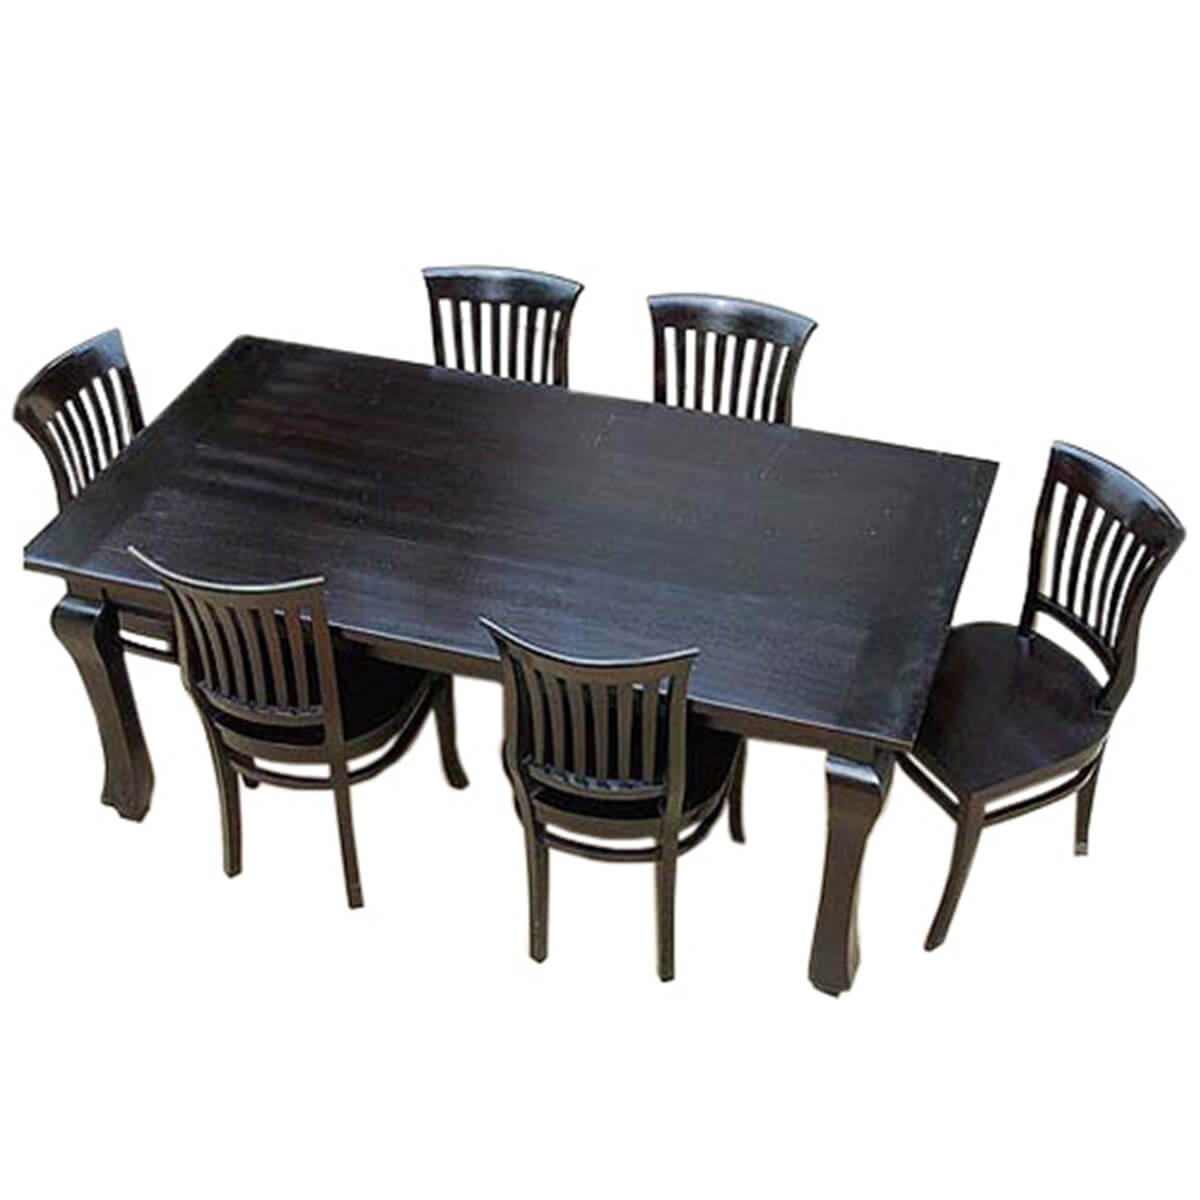 Kitchen Dining Chairs Solid Wood 8: Kansas City Solid Wood Kitchen Dining Table With School